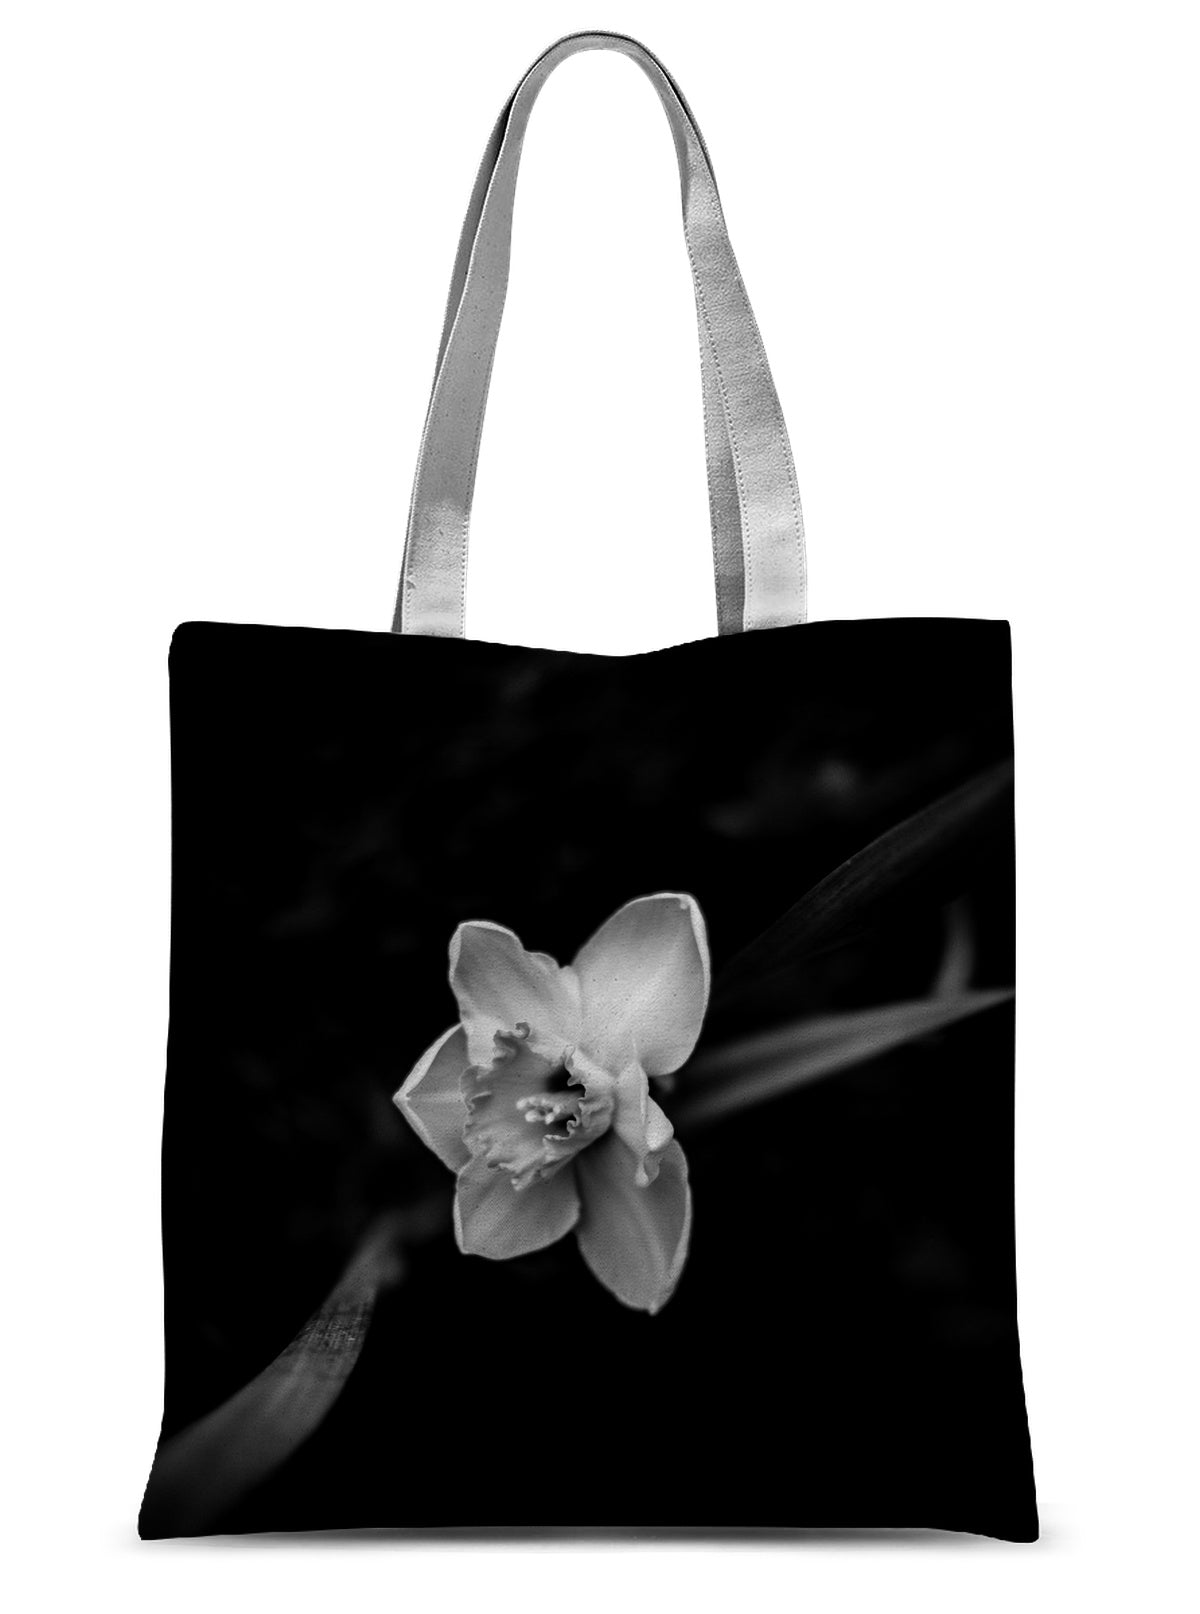 FSMONO-03 Sublimation Tote Bag